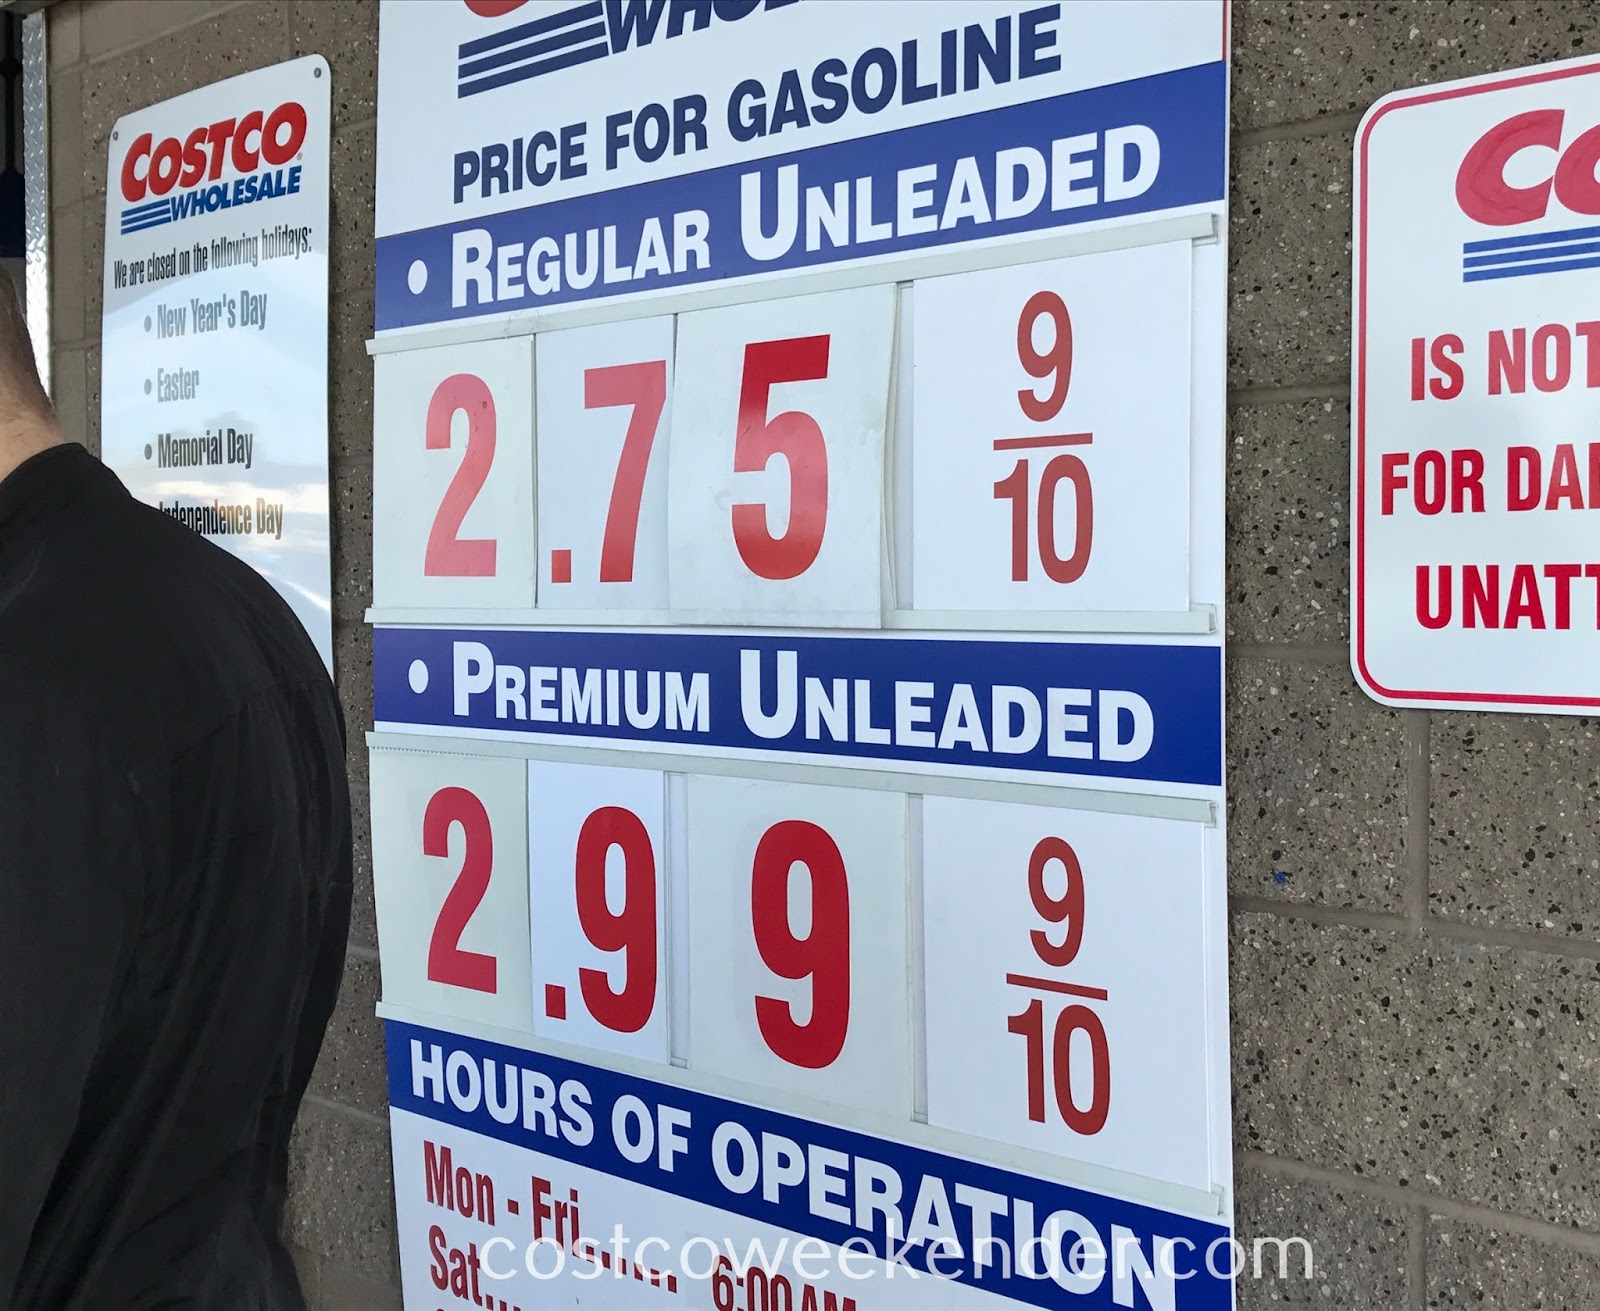 Costco gas for April 23, 2017 at Redwood City, CA